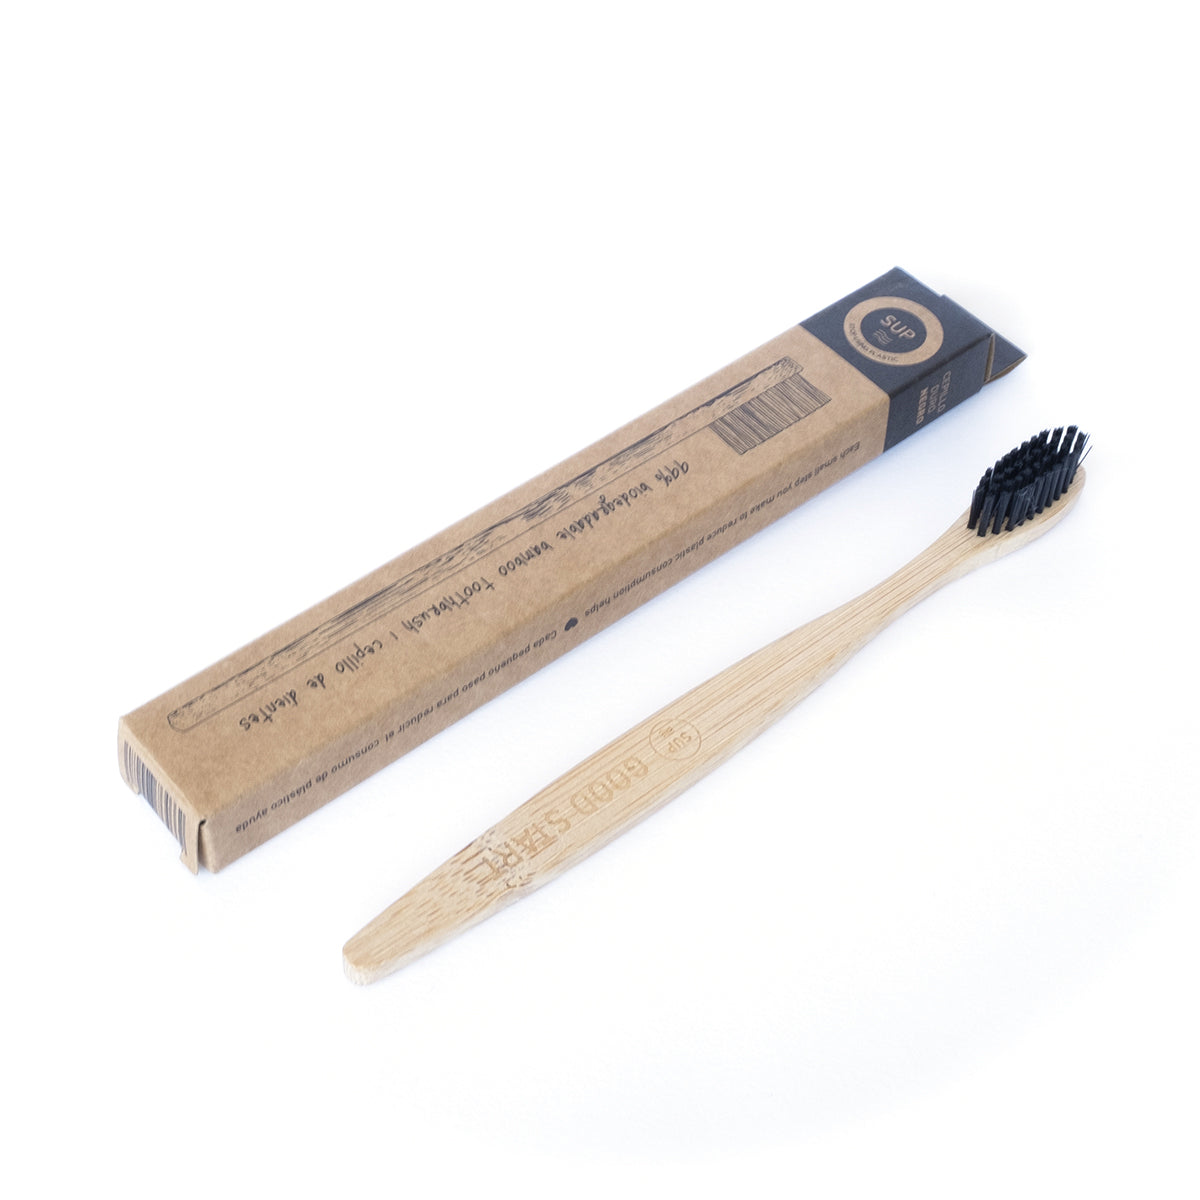 Bamboo Toothbrush - Hard Black Bristle